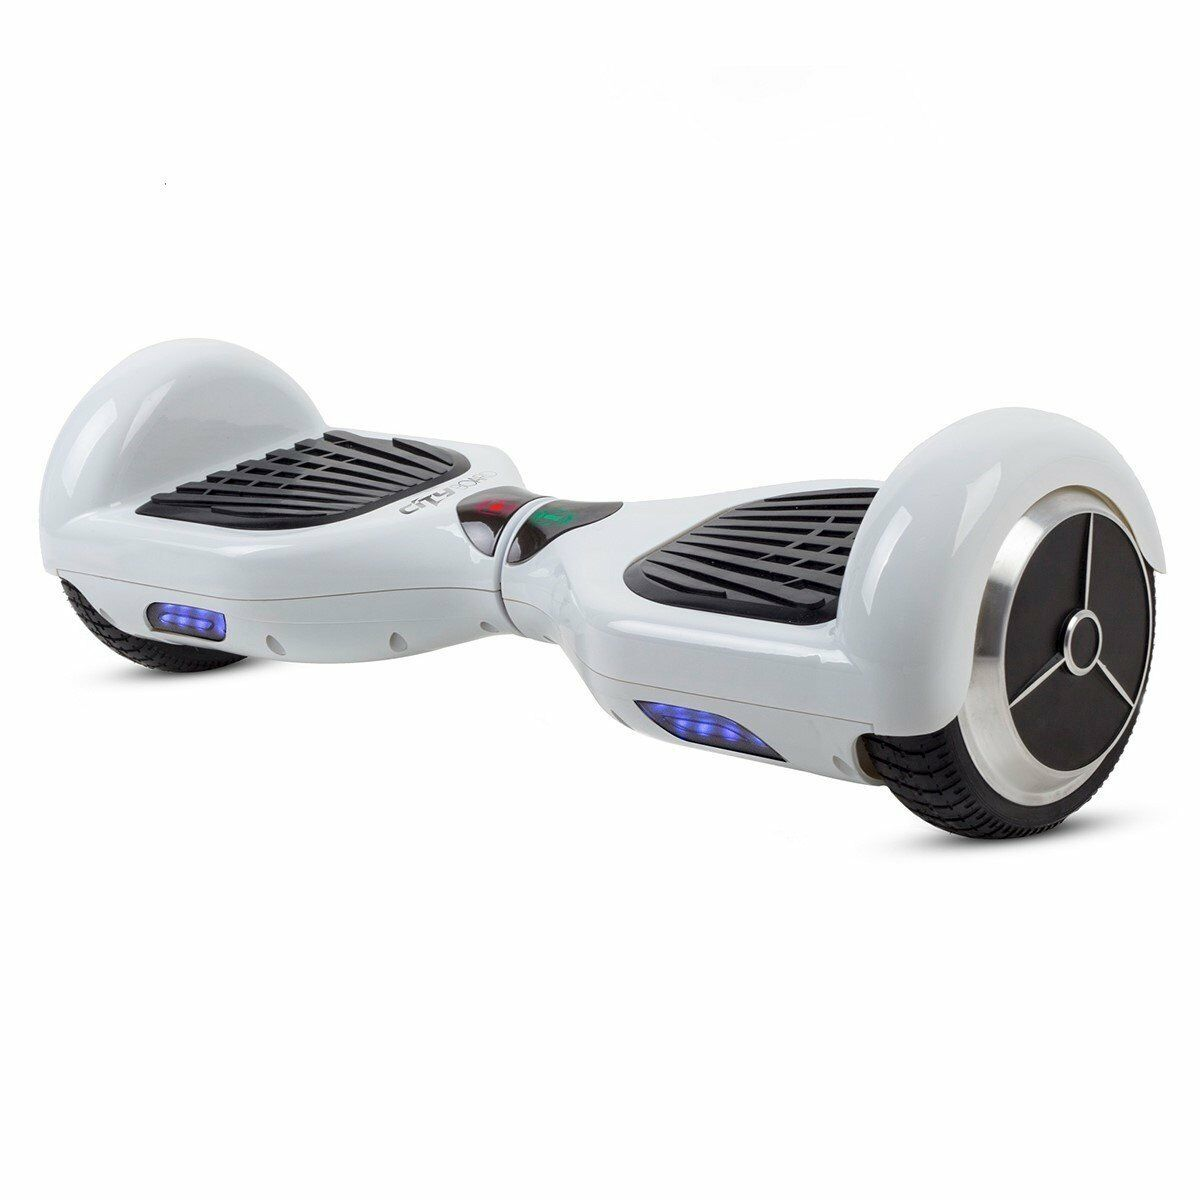 GoClever CityBoard S6 Hoverboard Smart Self Balance e-Board mini-Scooter Weiss